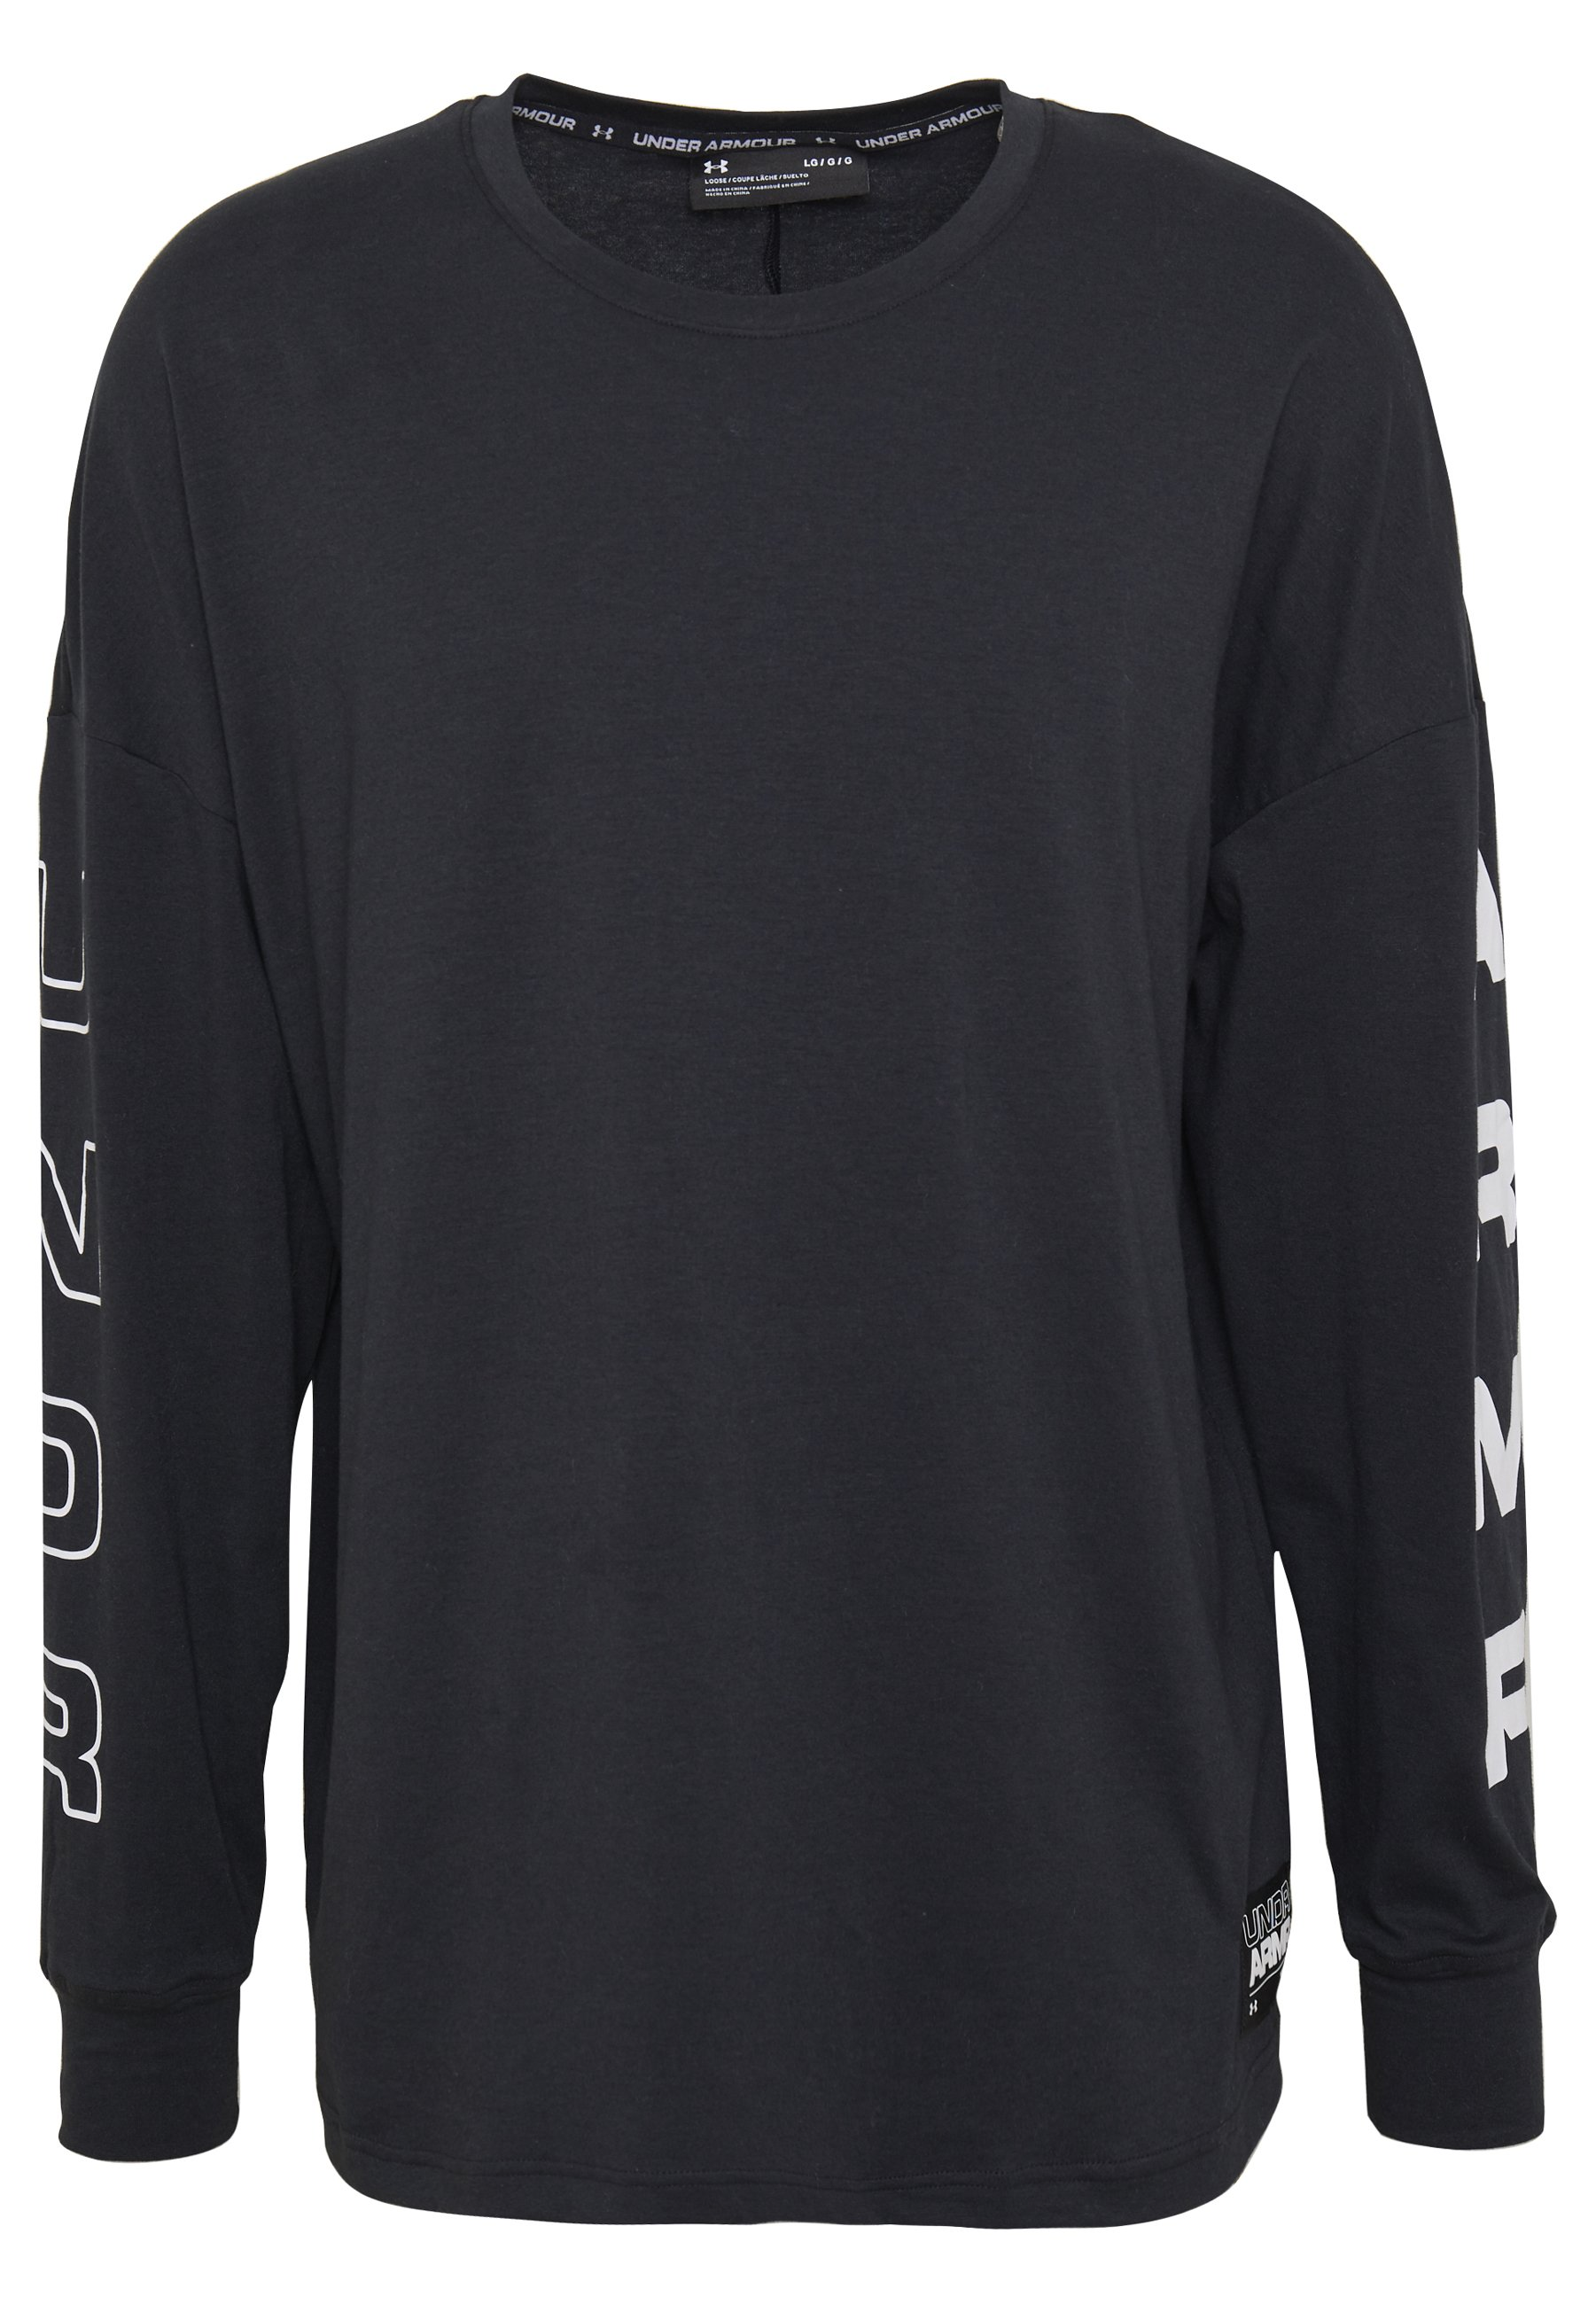 Under Armour Moments Tee - T-shirt À Manches Longues Black/white